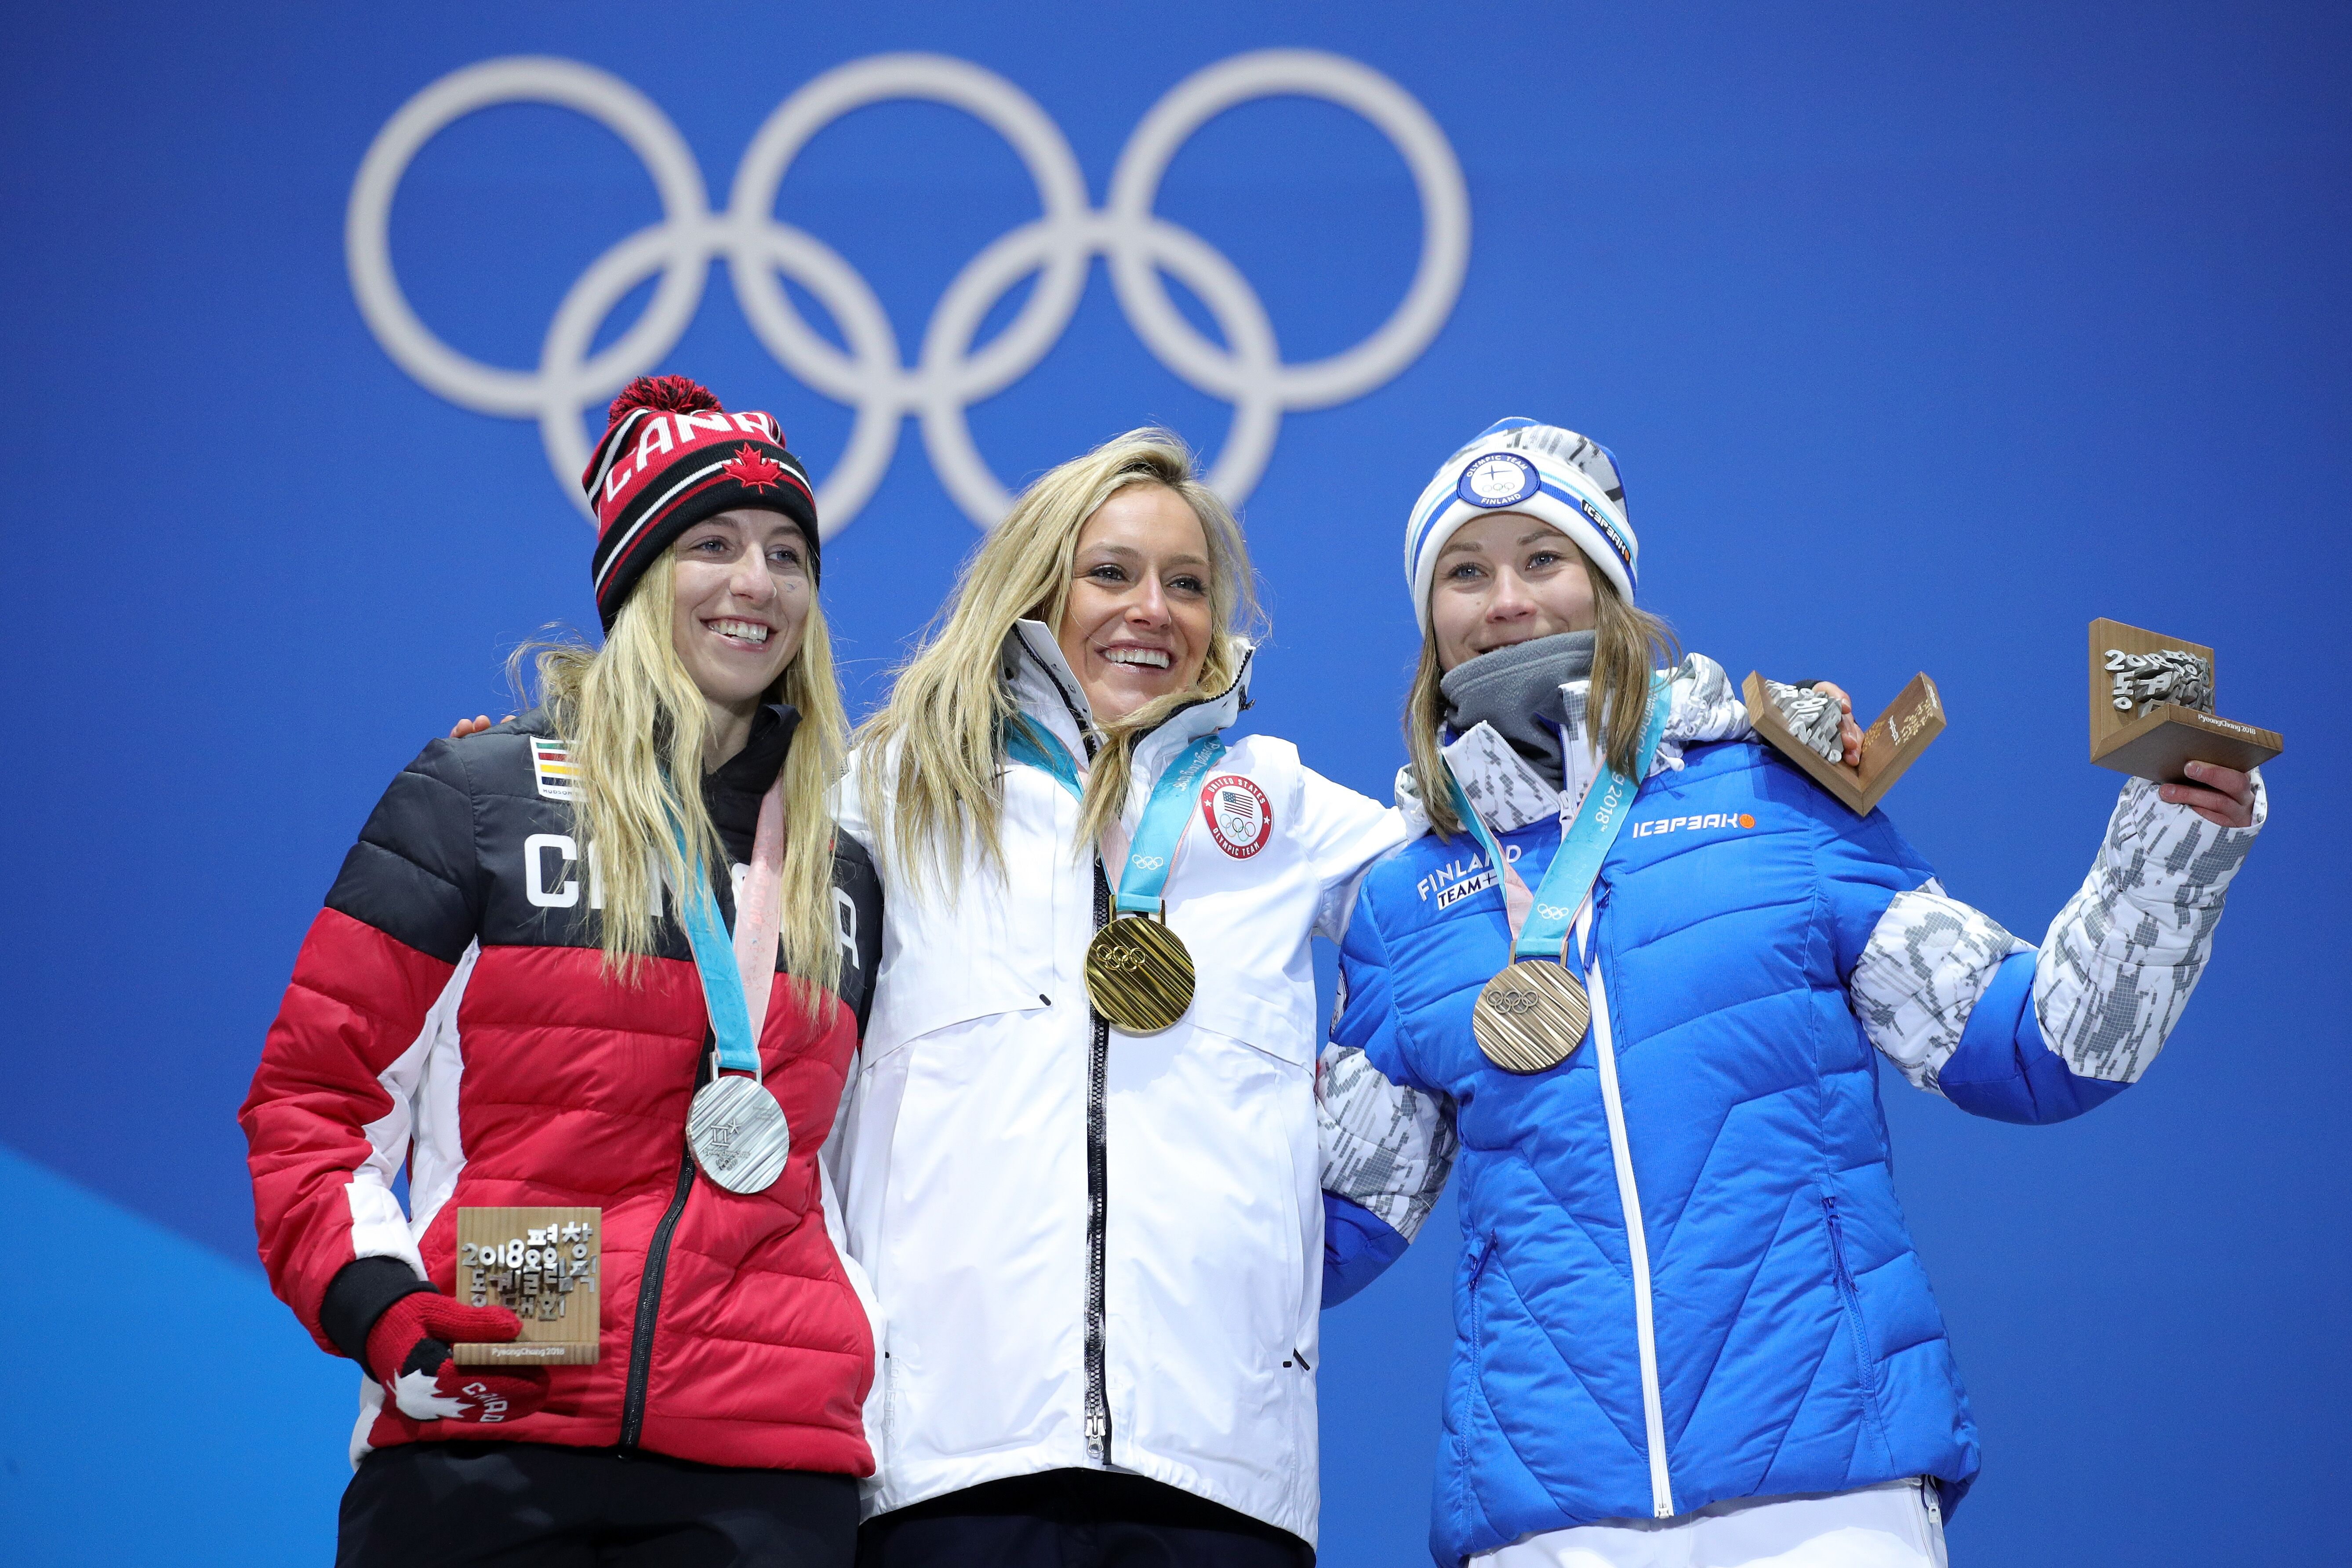 Winter Olympics medal count update: Monday, February 12